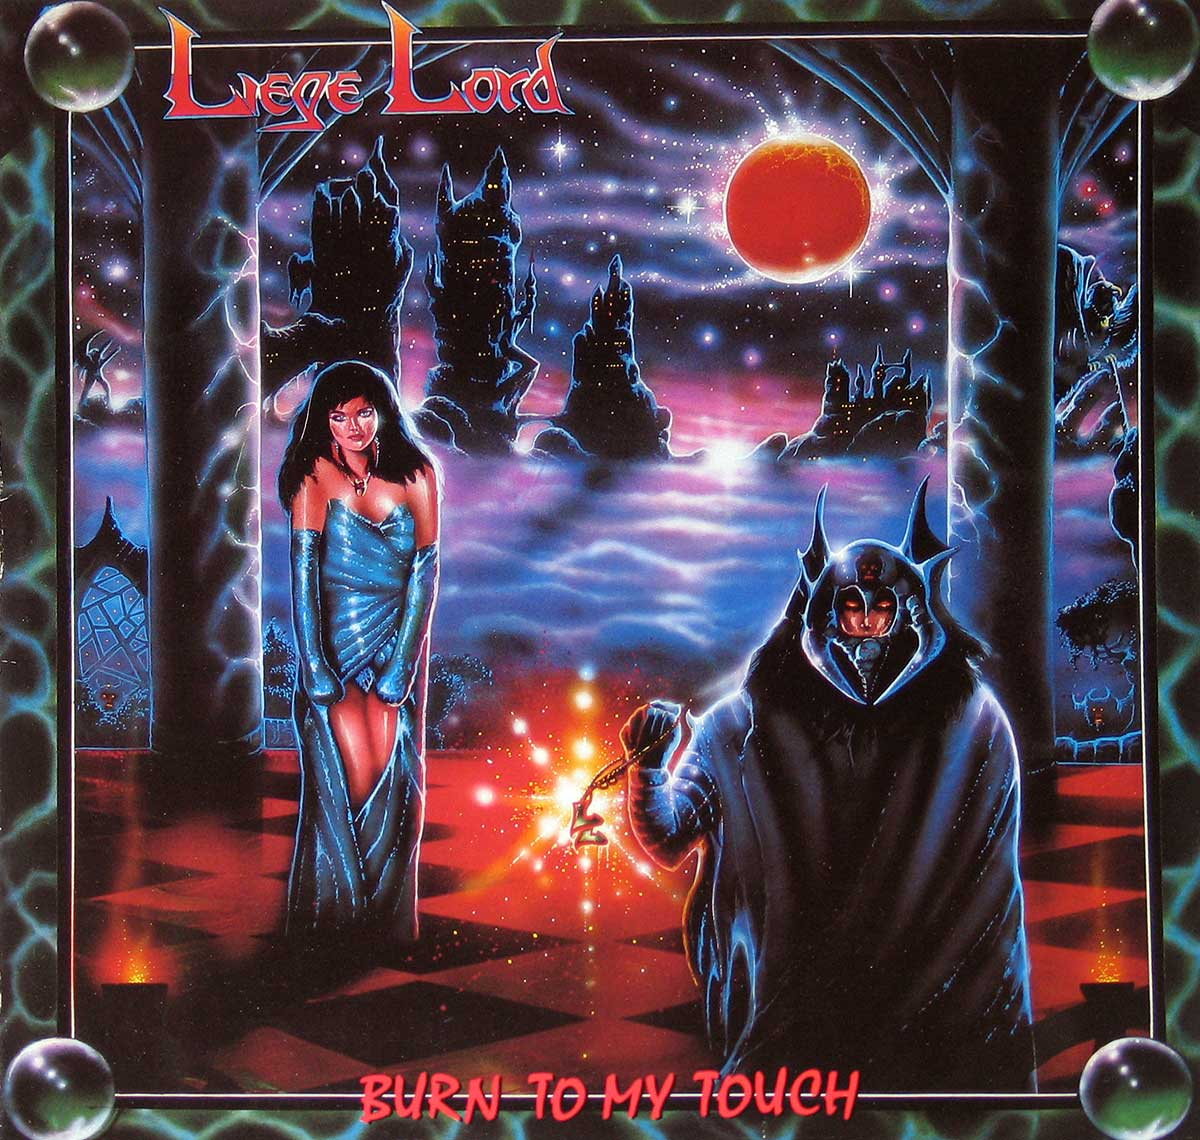 large photo of the album front cover of: Liege Lord Burn to my Touch